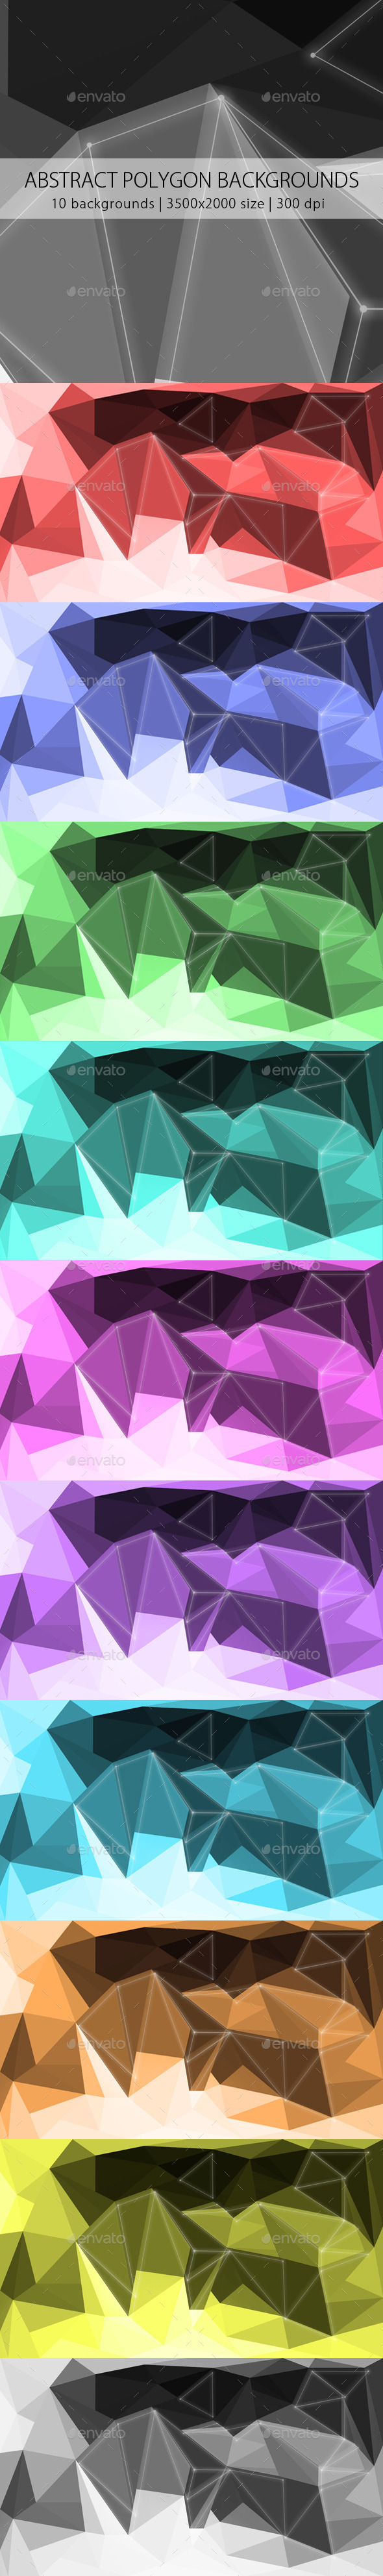 GraphicRiver Abstract Polygon Backgrounds 9876941